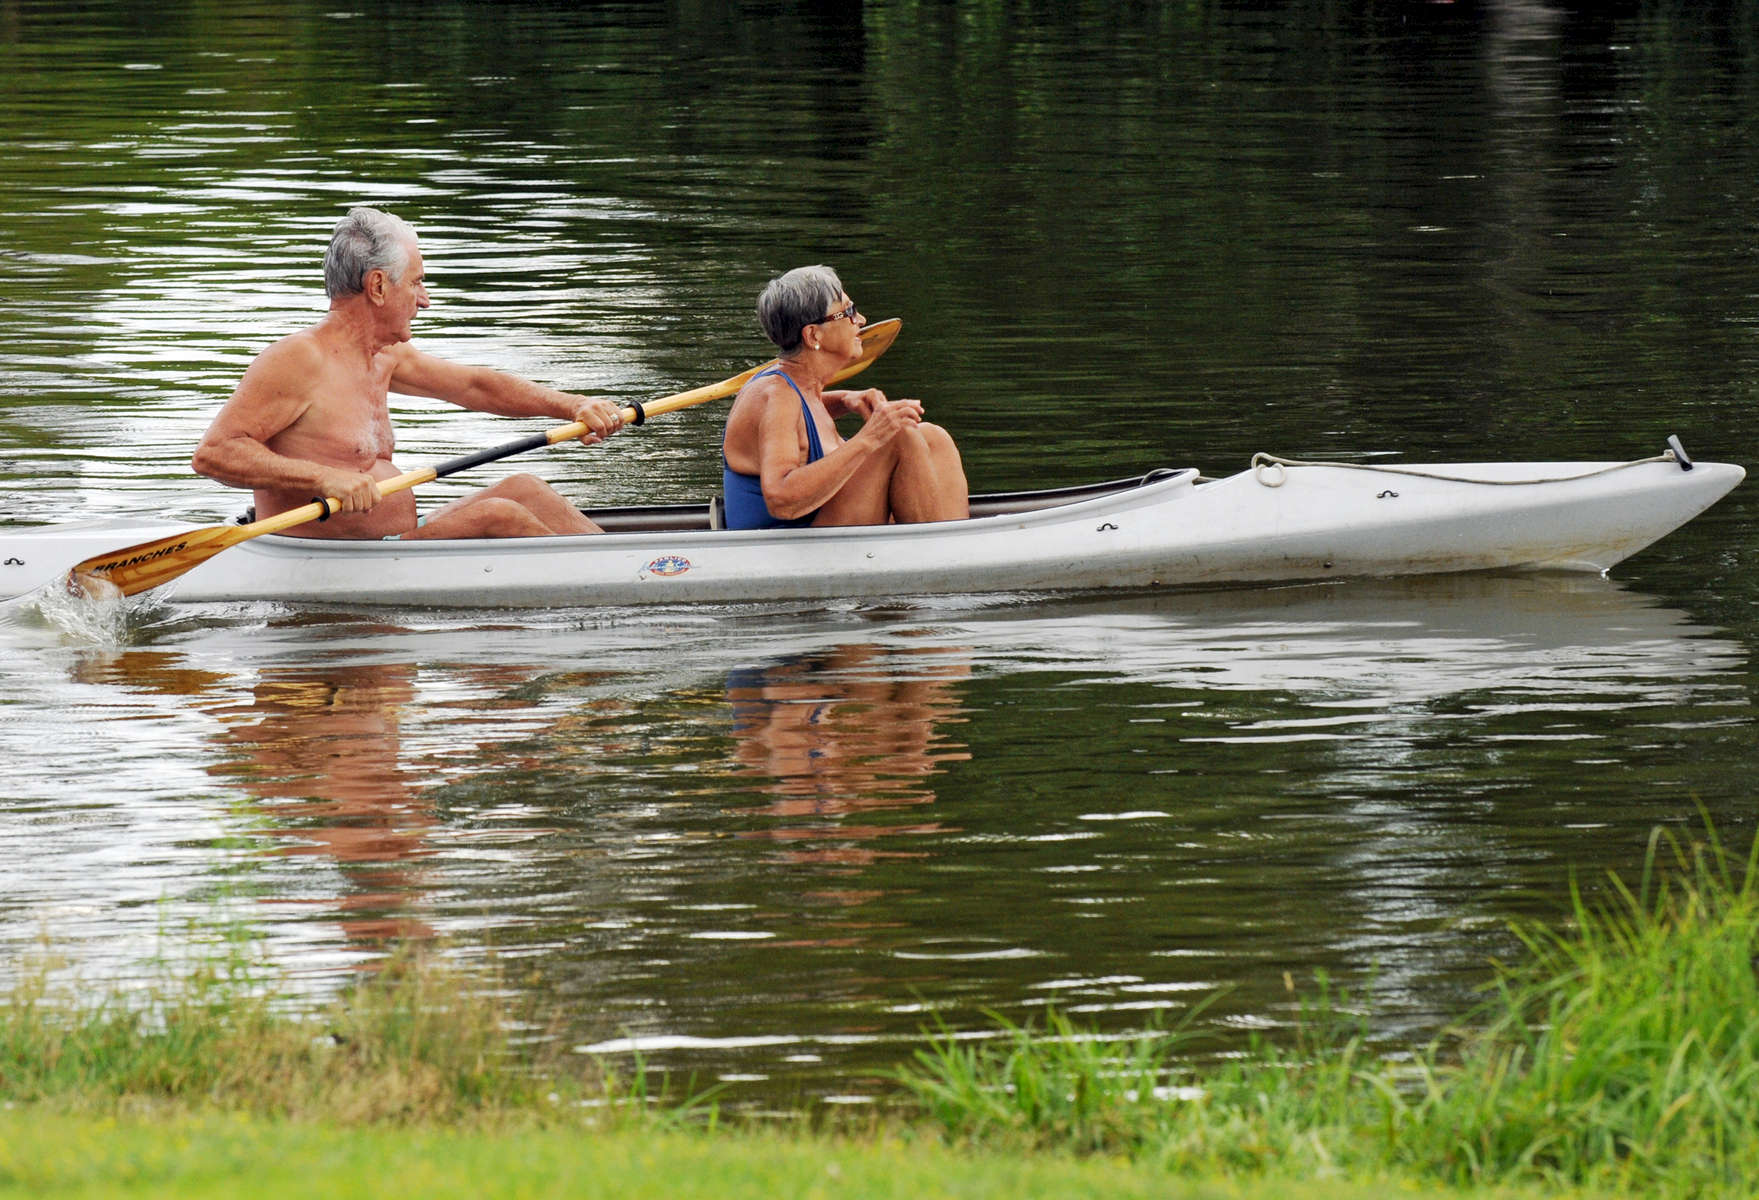 Francis and Ildi Kovago kayak on Indian Lake just as the rain clouds roll in on Wednesday, July 15, 2015. The couple said they used to teach sailing lessons on the lake but on a calm day like today, kayaking is best. T&G Staff/Christine Hochkeppel